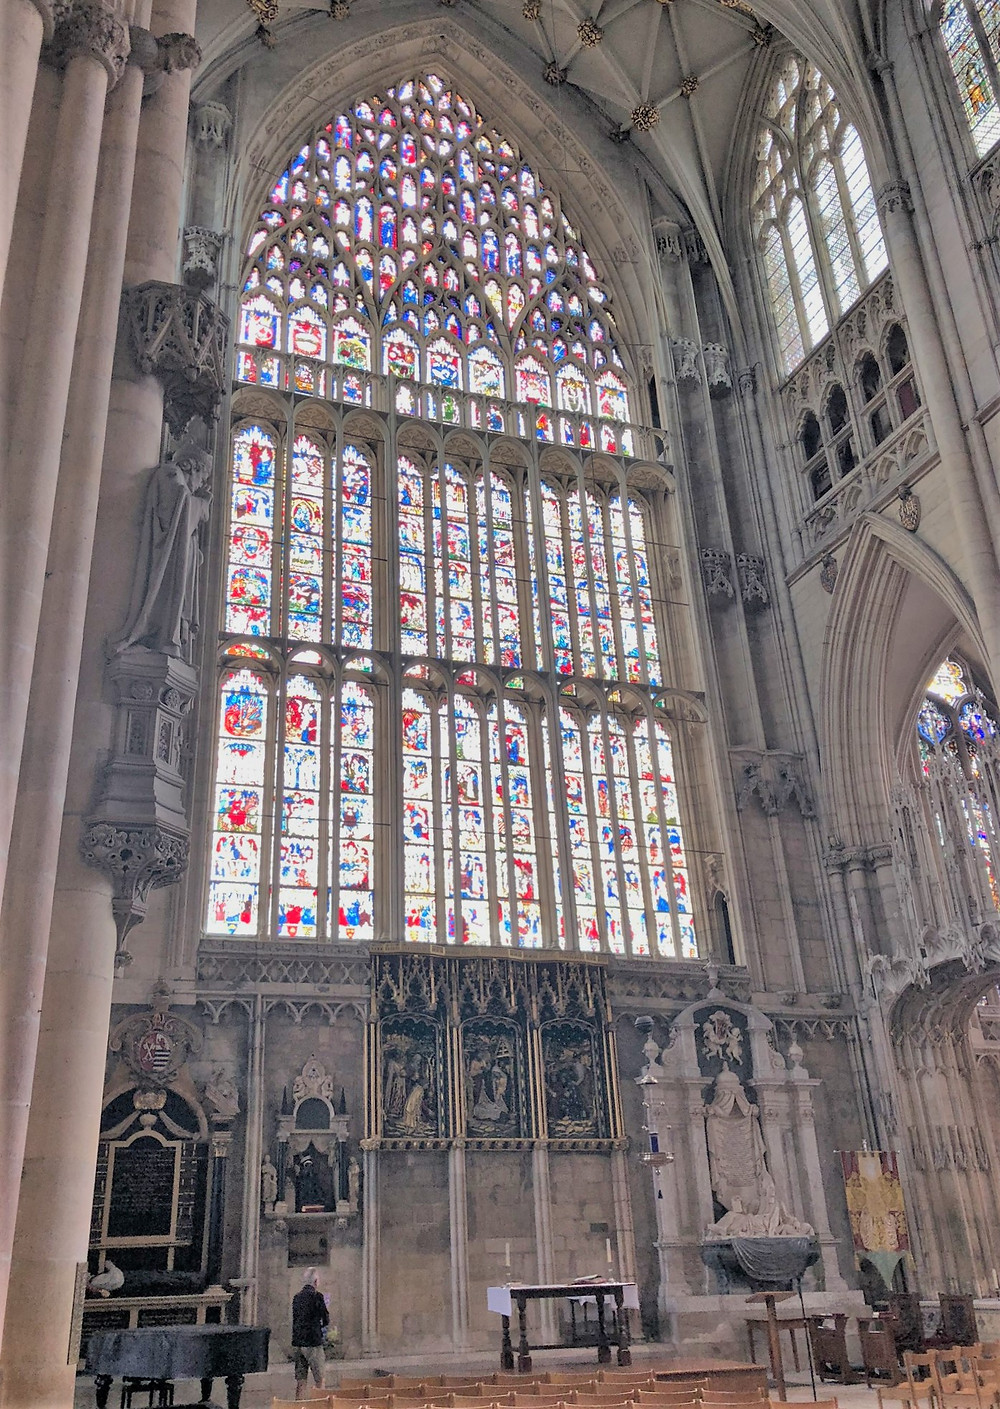 East Window in York Minster is one of the great artistic achievements of the Middle Ages.